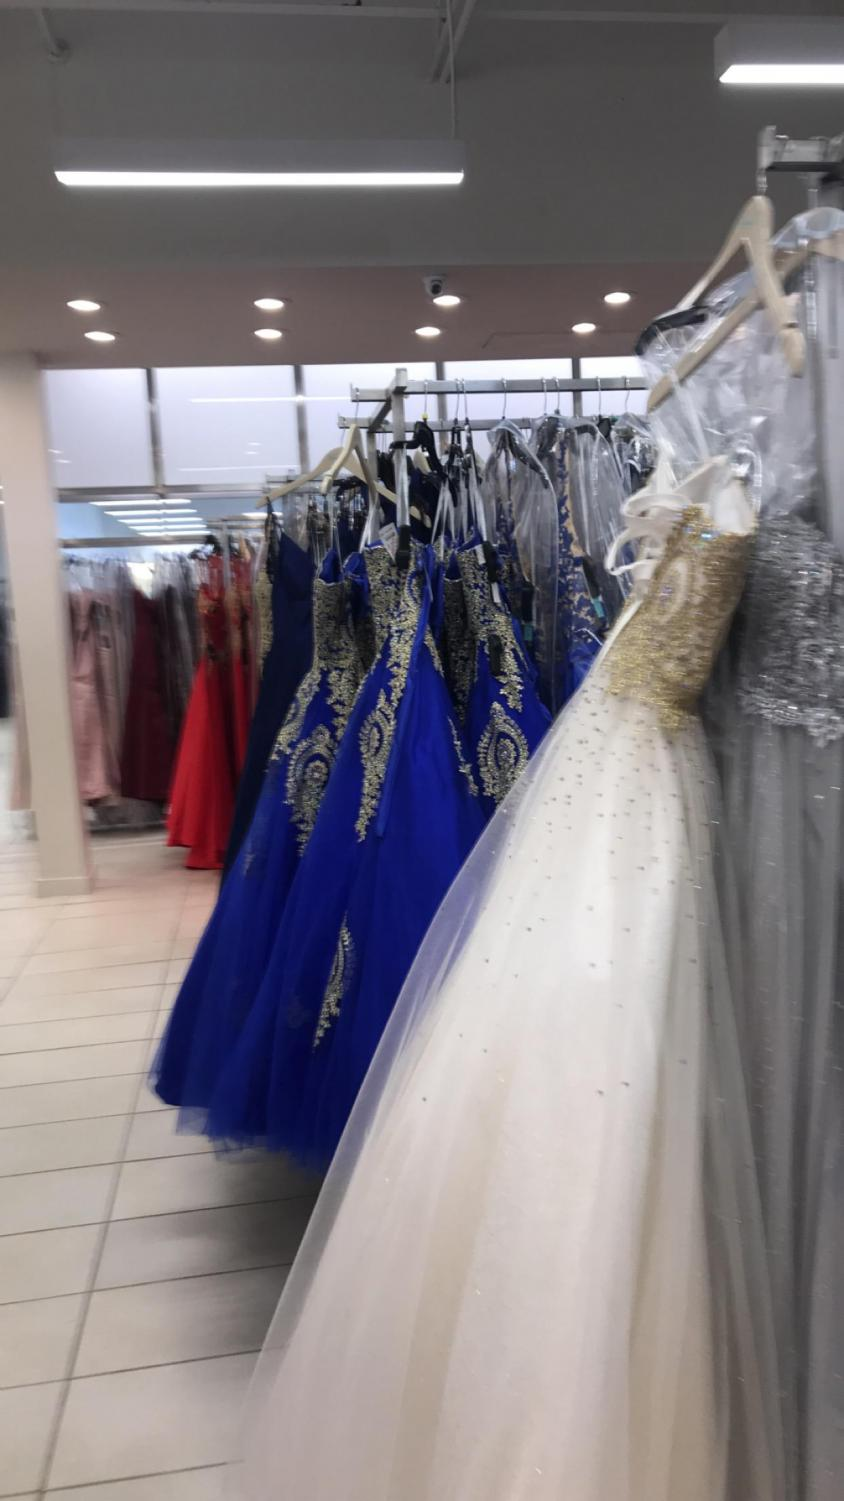 Camille La Vie in Carle Place has a wide selection of dresses to choose from at great prices. Whatever fit or color you're looking for, they have it. They are one of a few dress stores on the island that provide great customer service along with great prom dresses.